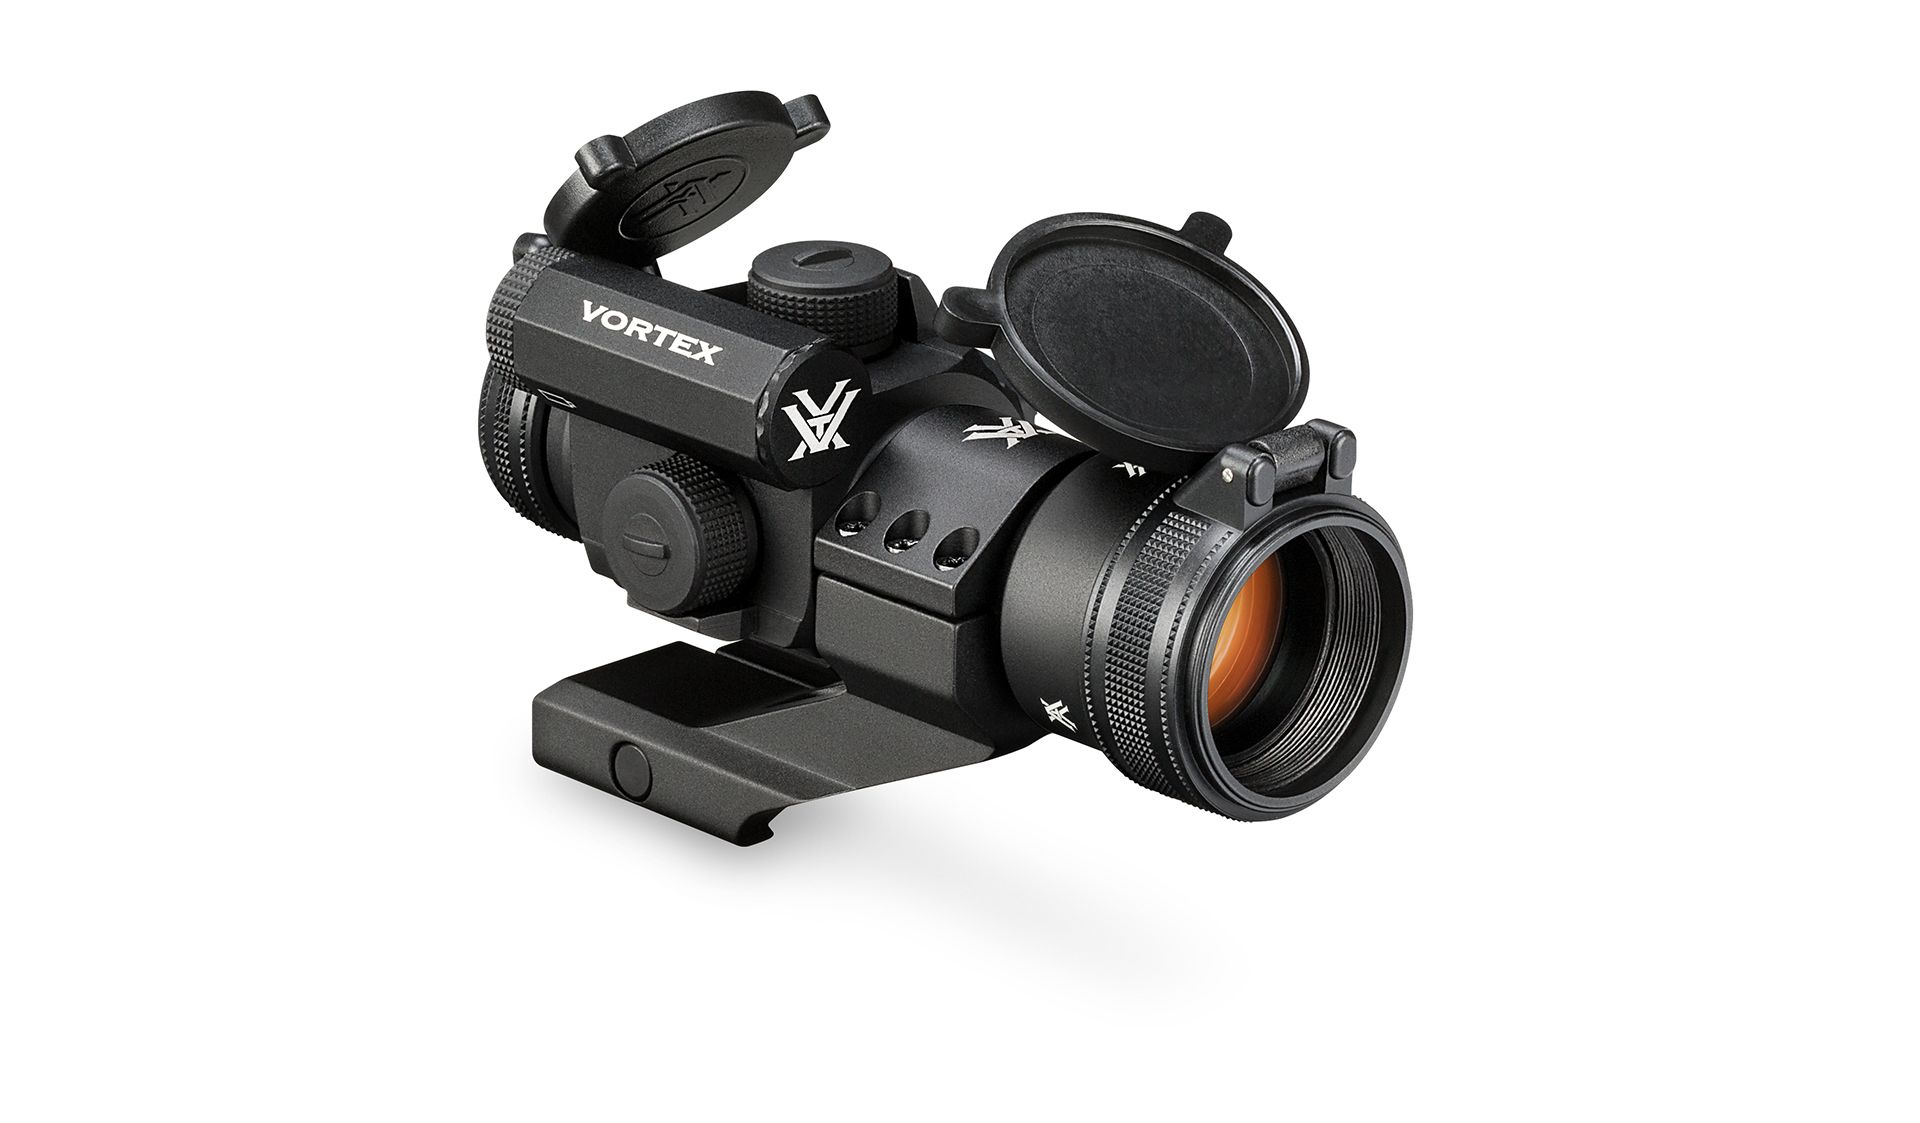 VORTEX OPTICS INTRODUCES THE UPGRADED STRIKEFIRE II RED DOT OPTIC